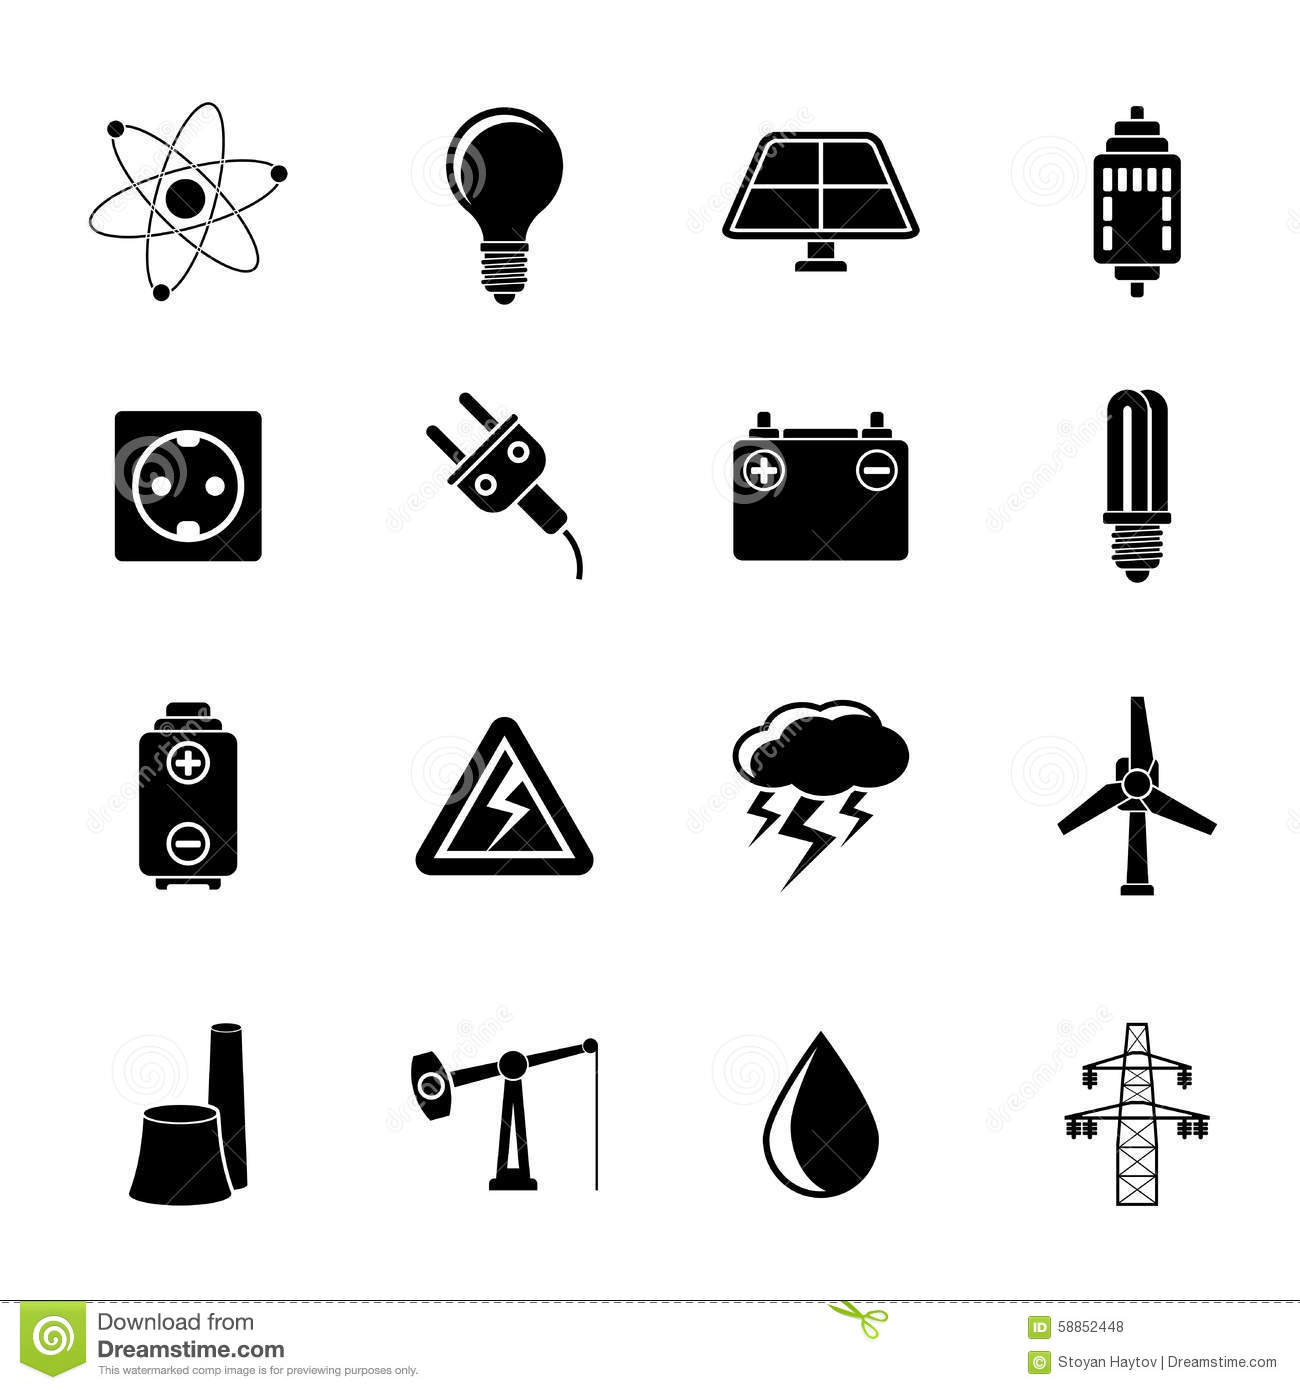 Electrical Circuit Schematic Symbol Book also Rp5a Thermal Protector Wiring Diagram moreover Elect Eng World1 blogspot additionally Electrical Blueprint Reading in addition Silhouette Power Energy Electricity Icons. on thermal fuse electrical symbol